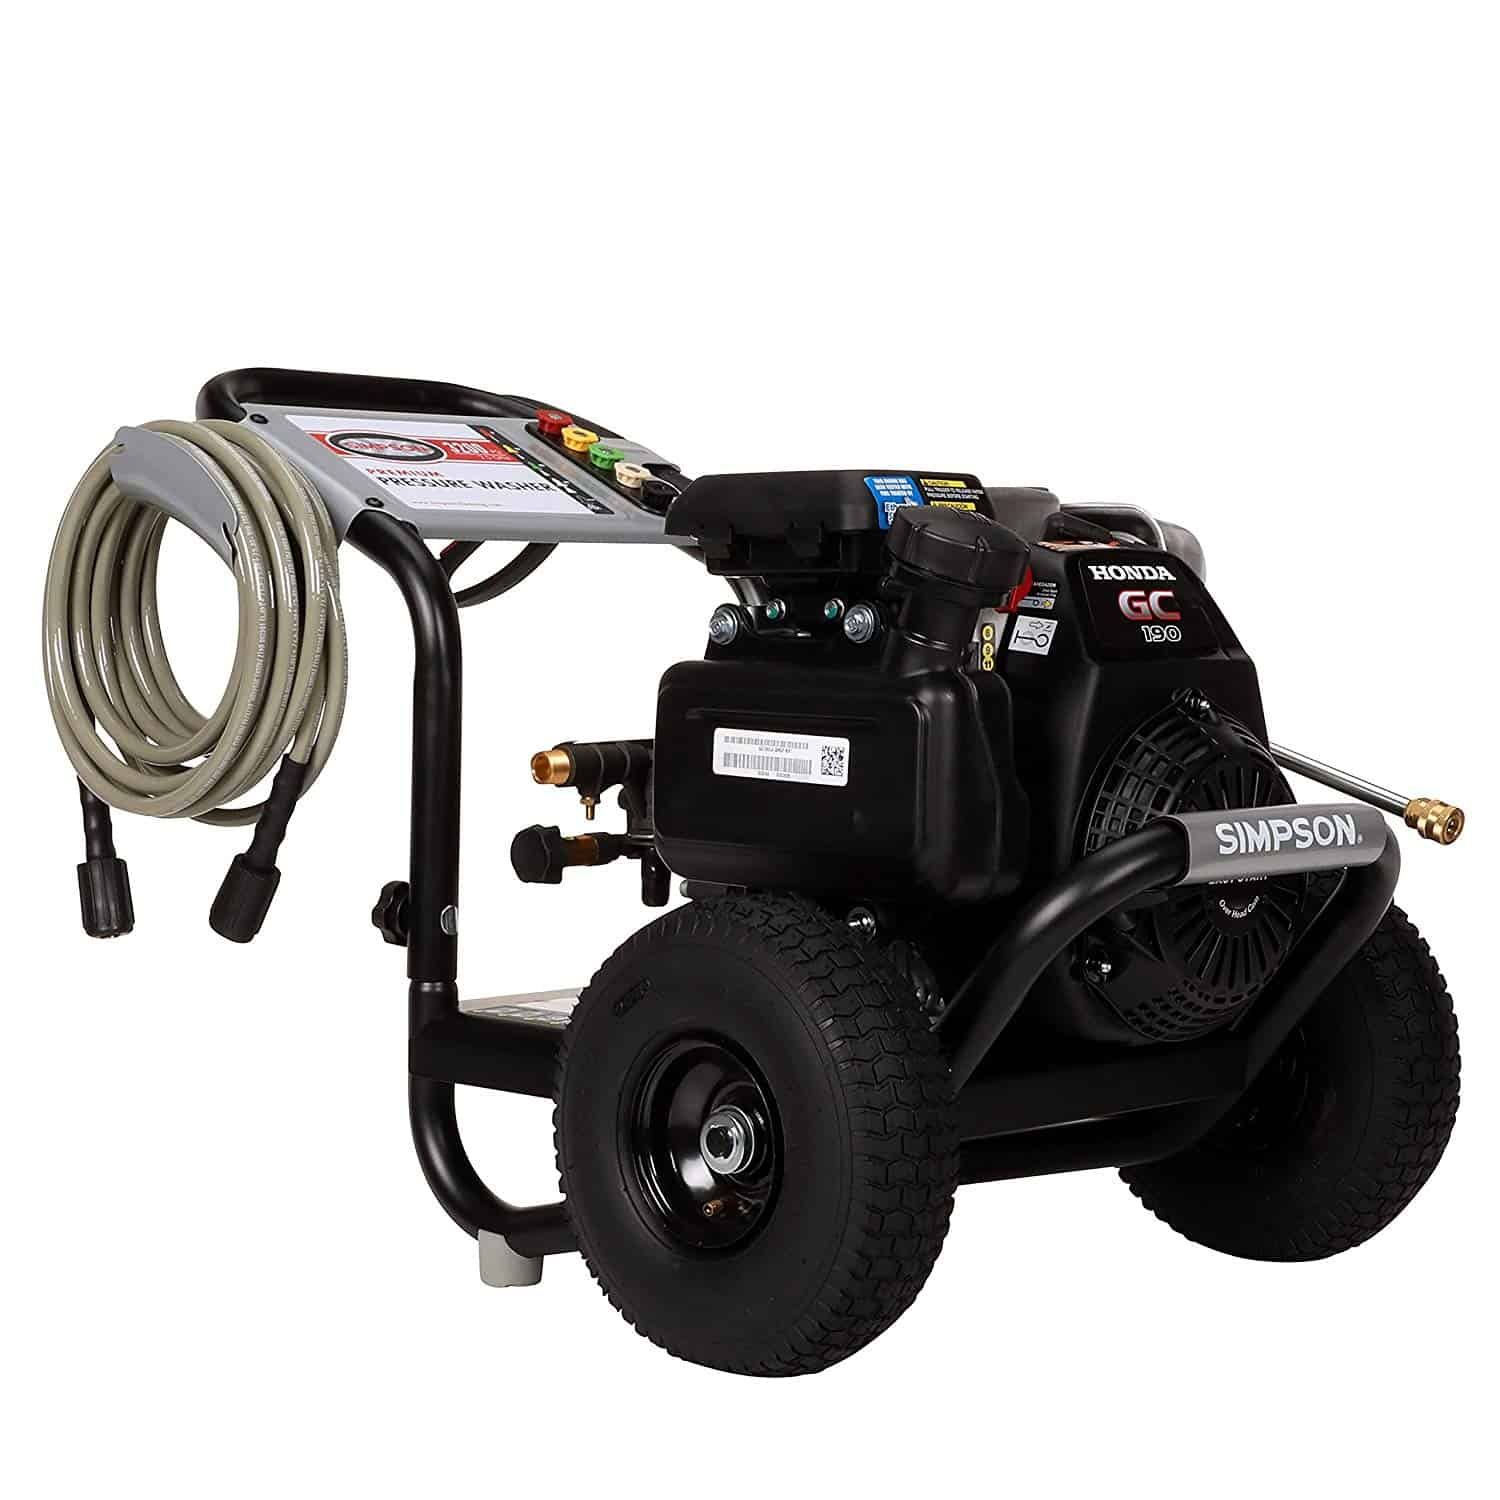 Simpson Cleaning MSH3125-S 3100 Gas Pressure Washer